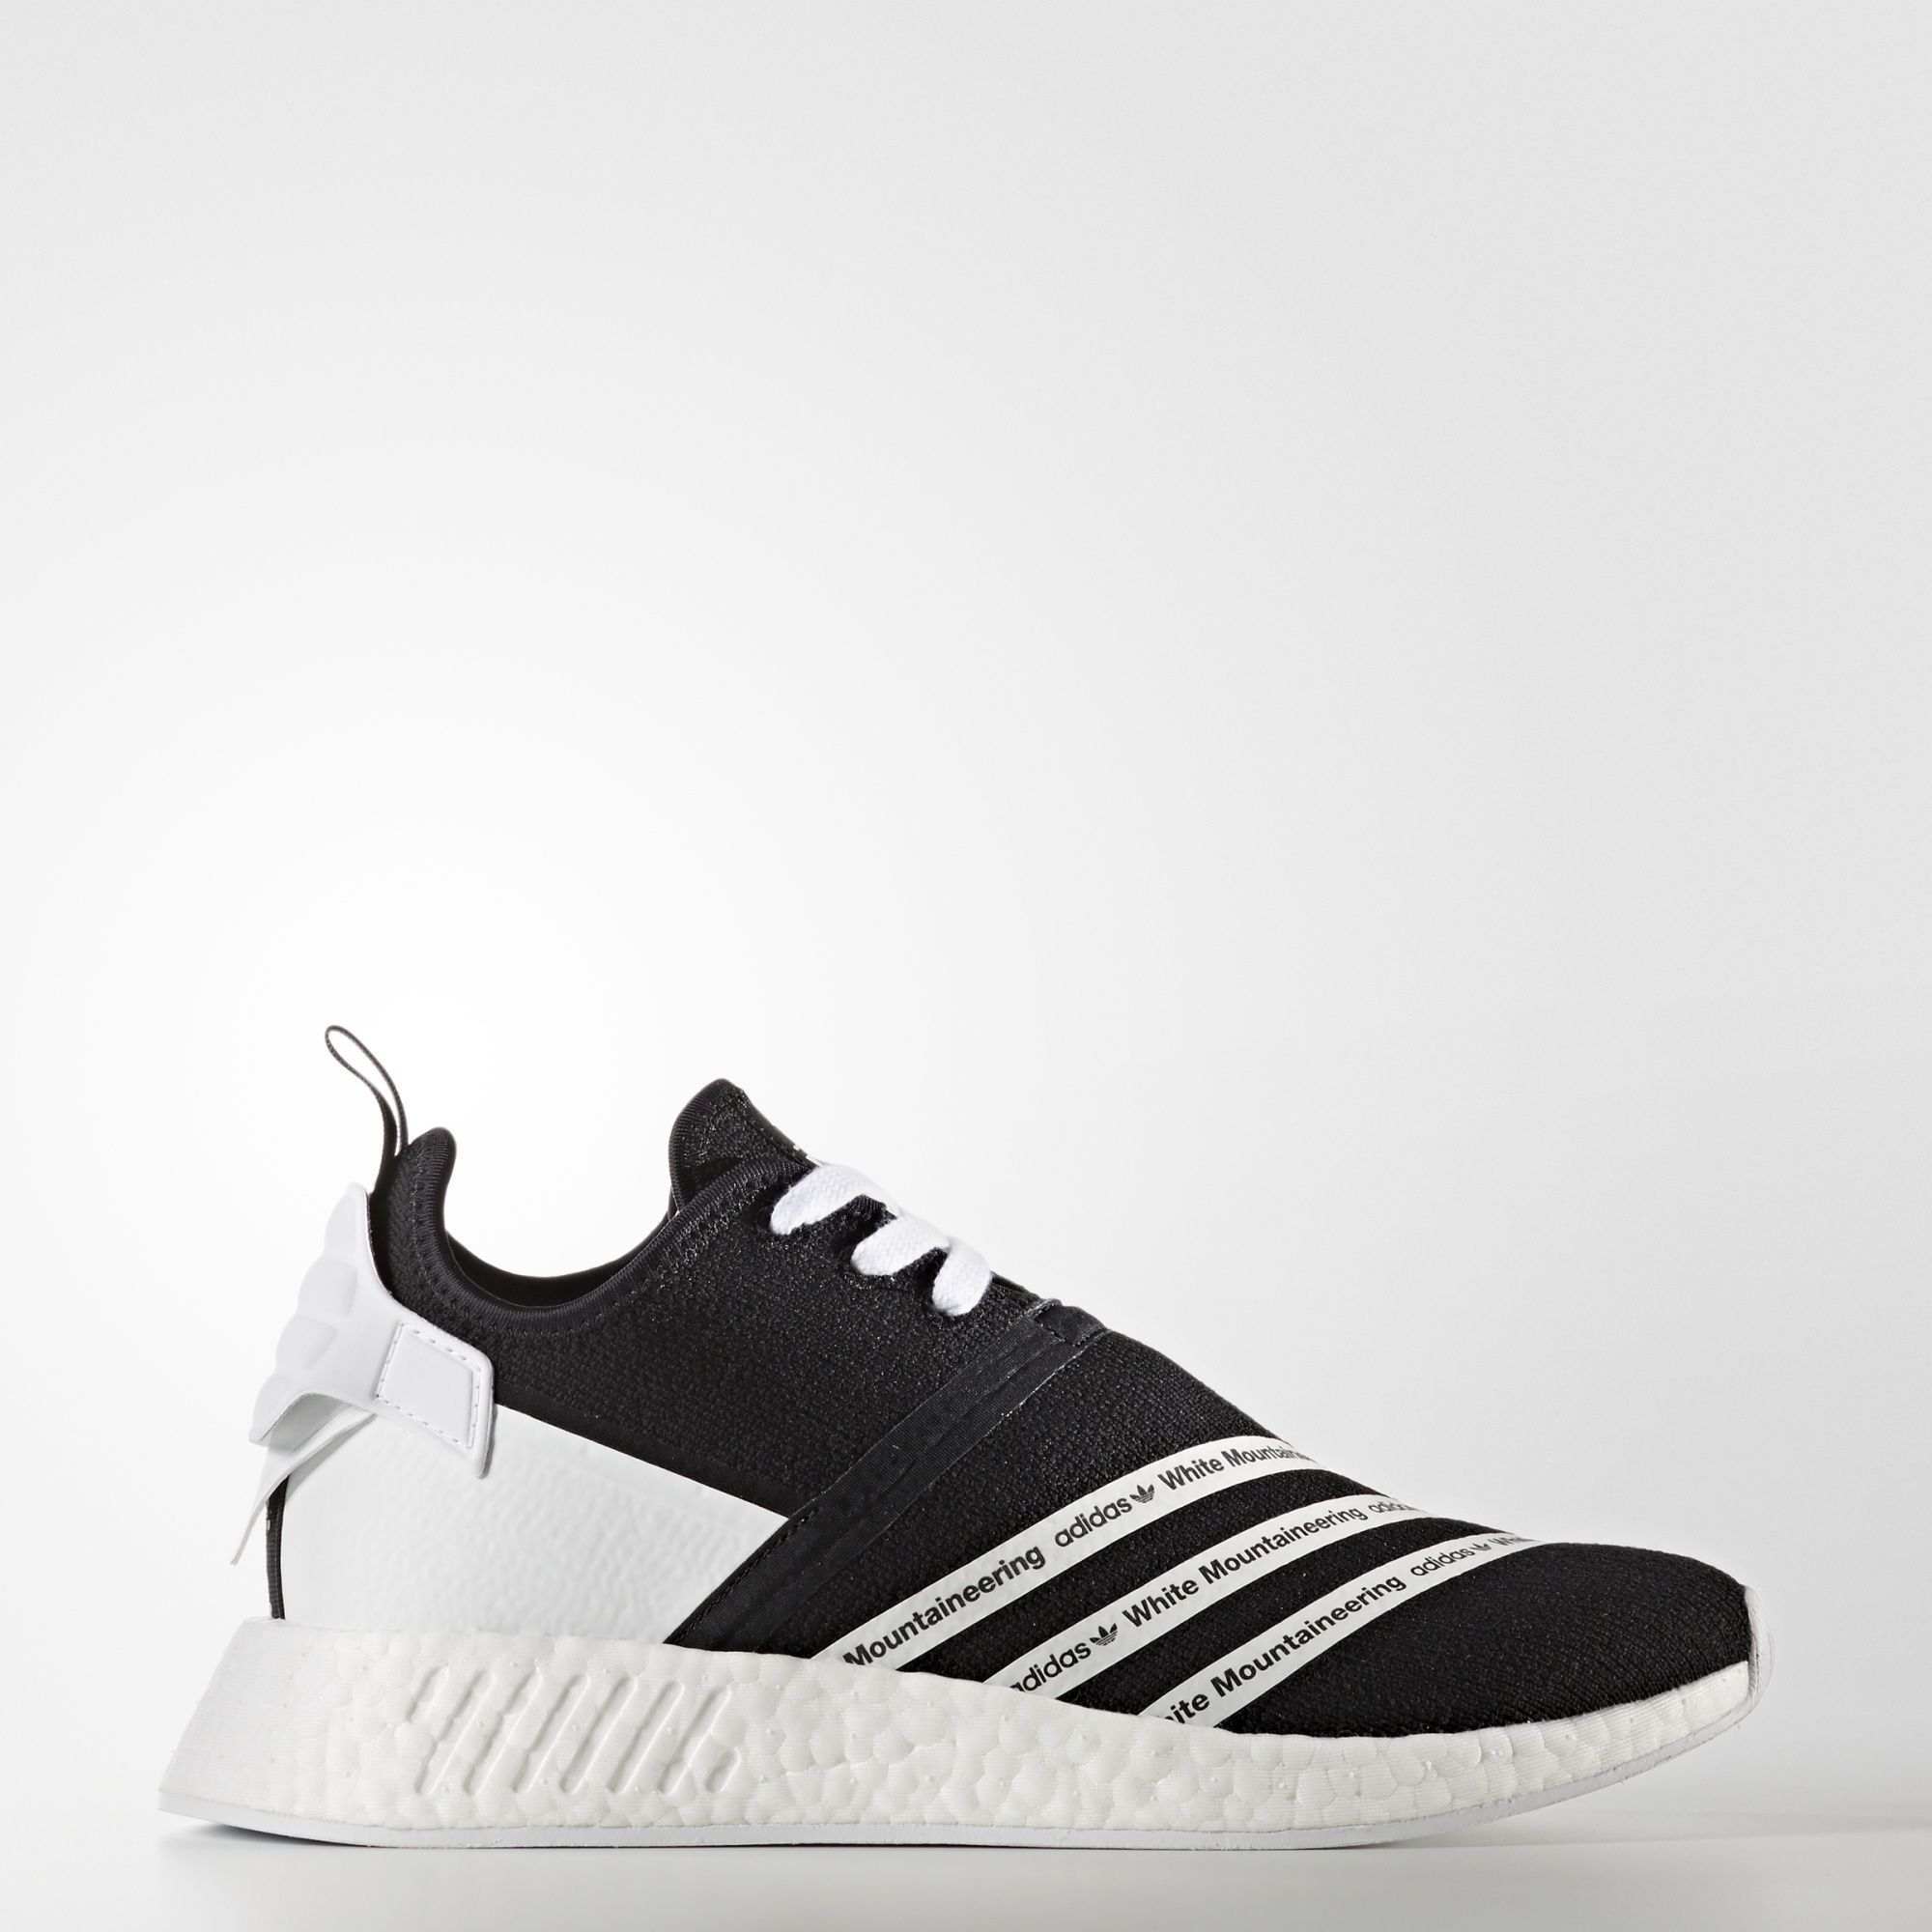 adidas - White Mountaineering NMD_R2 Primeknit Shoes